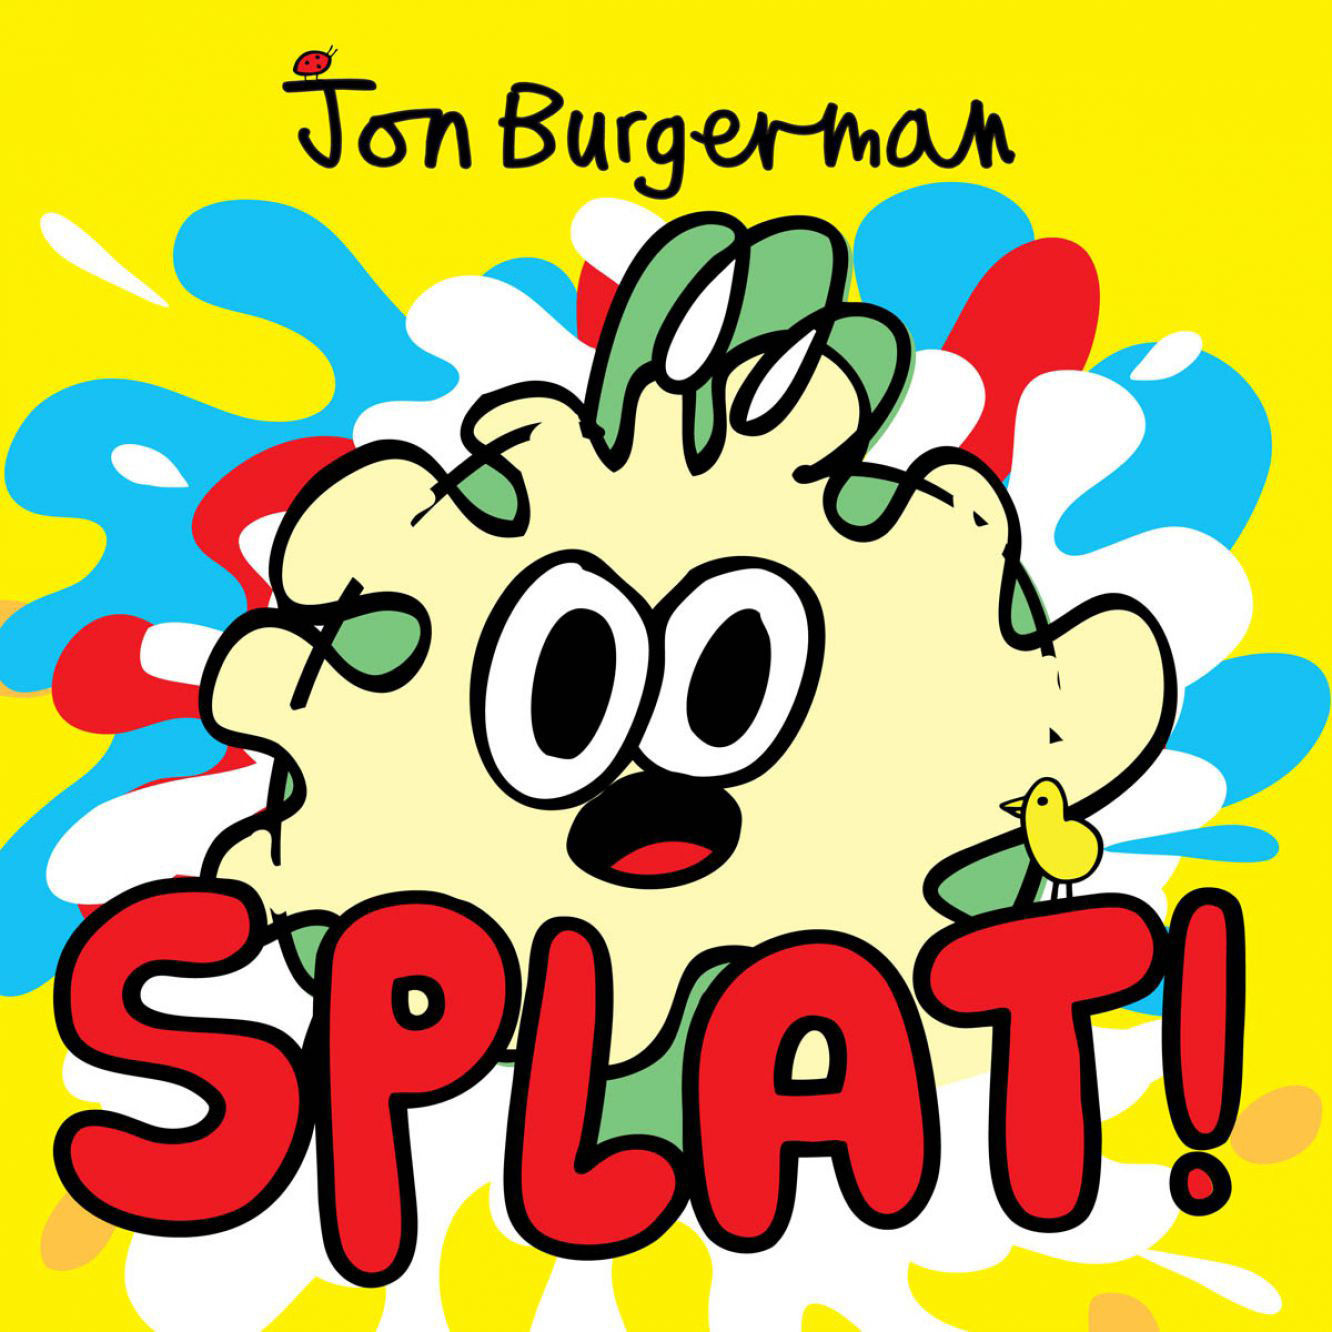 Splat Is True To Jon's Spontaneous And Playful Style  Full Of Bright And  Crazy Lighthearted Illustrations That Keep You Guessing, And We're Sure  Laughing,